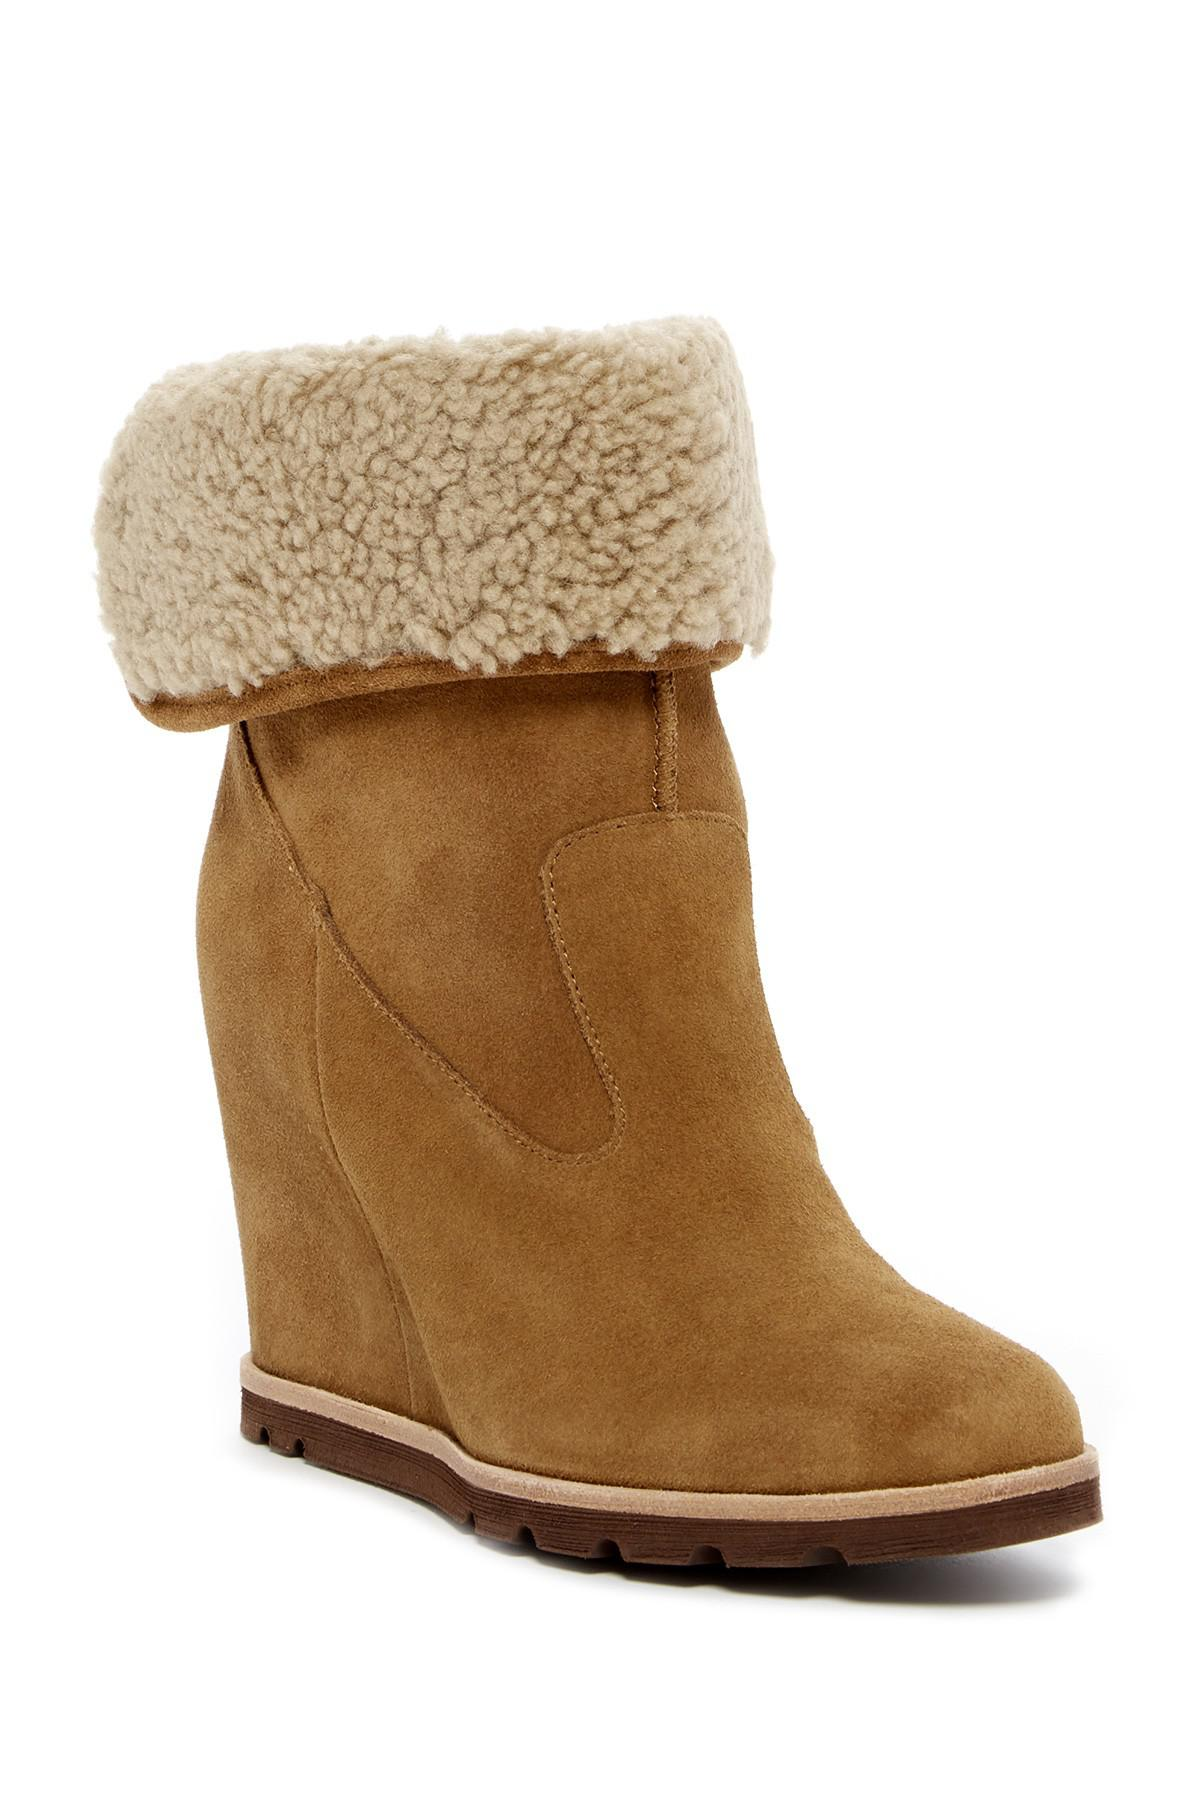 2aa32aab29a Lyst - UGG Kyra Genuine Shearling Wedge Boot in Brown